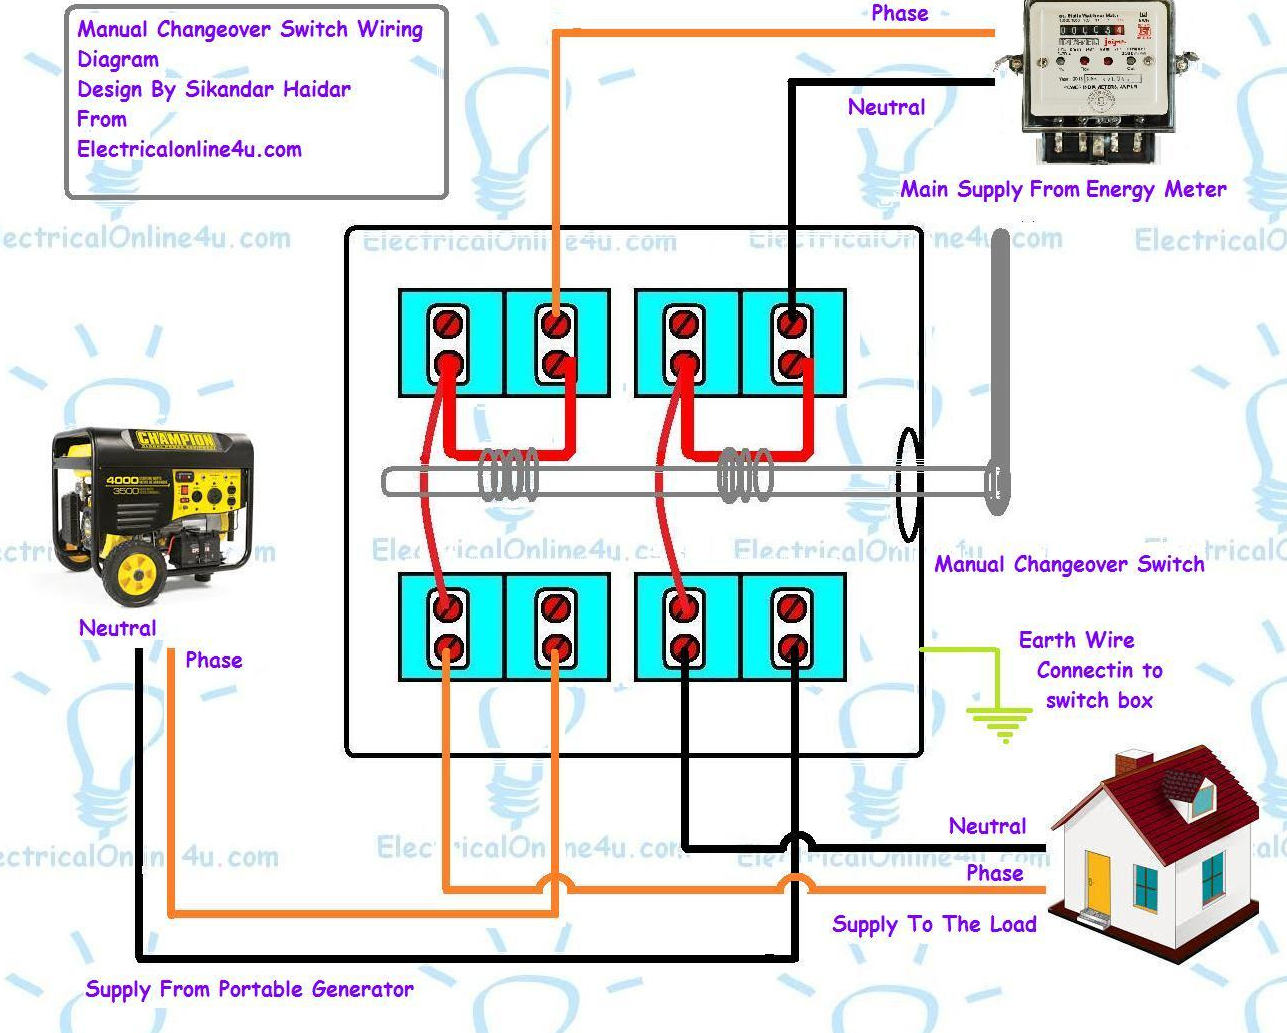 Manual changeover switch wiring diagram for portable generator ... 100 amp manual transfer switch wiring diagram Pinterest